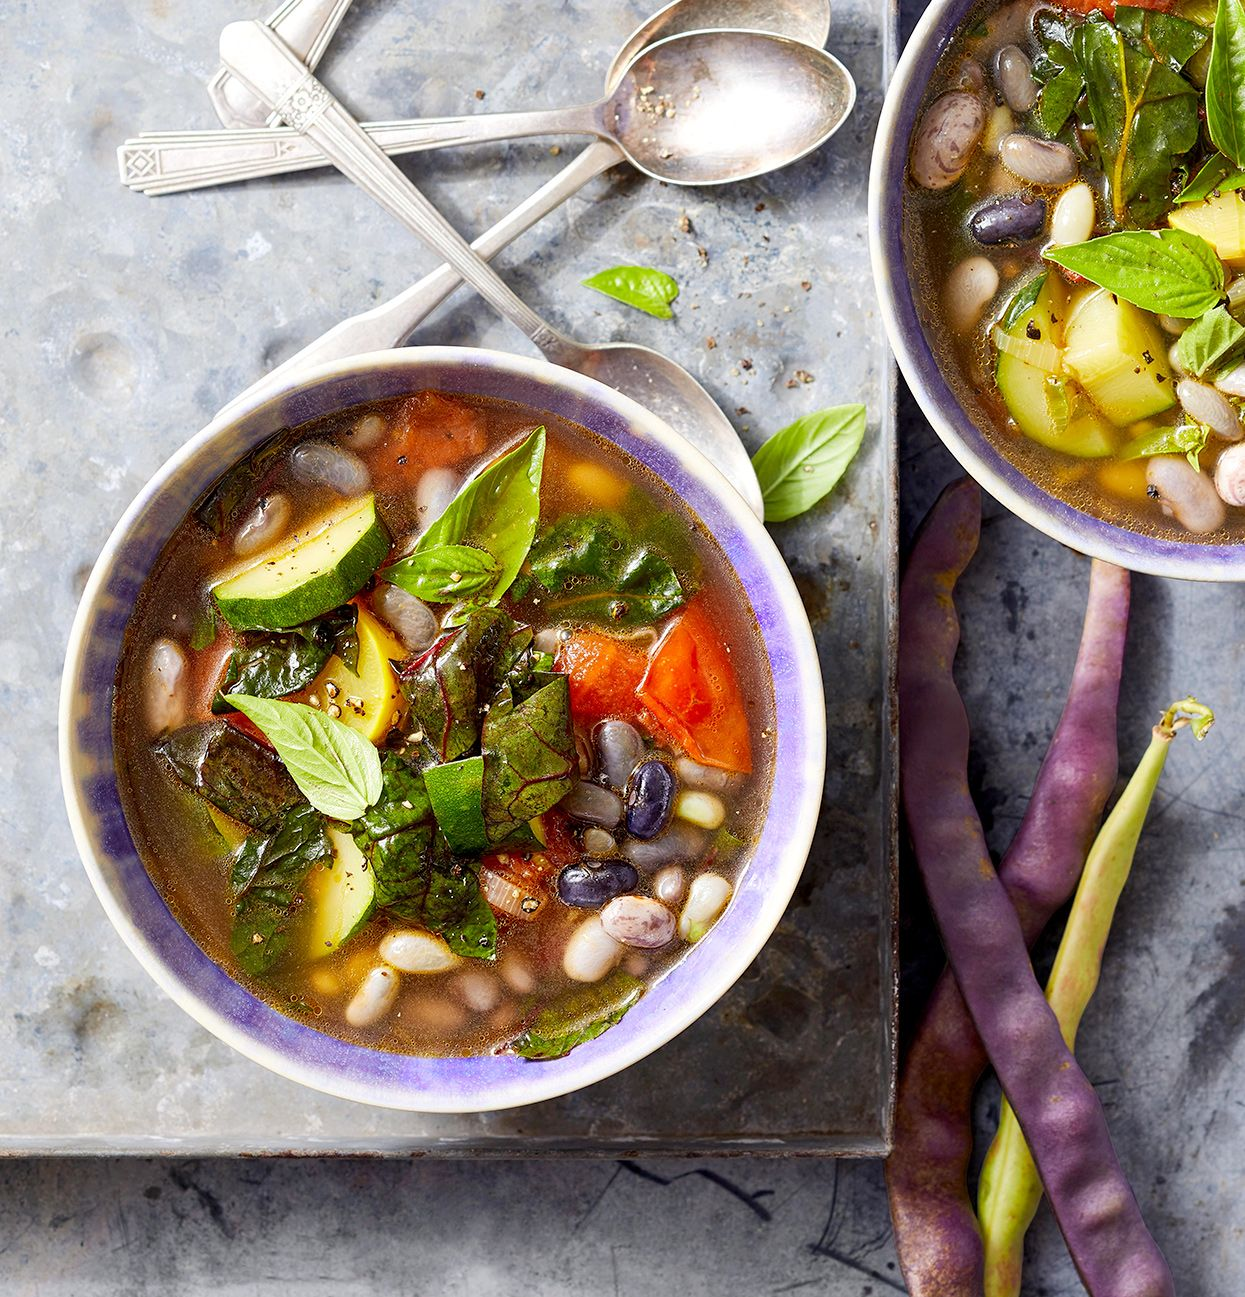 5bdcee80d2e36b695c51a0a5916d1ecb - Better Homes And Gardens Soups And Stews 2019